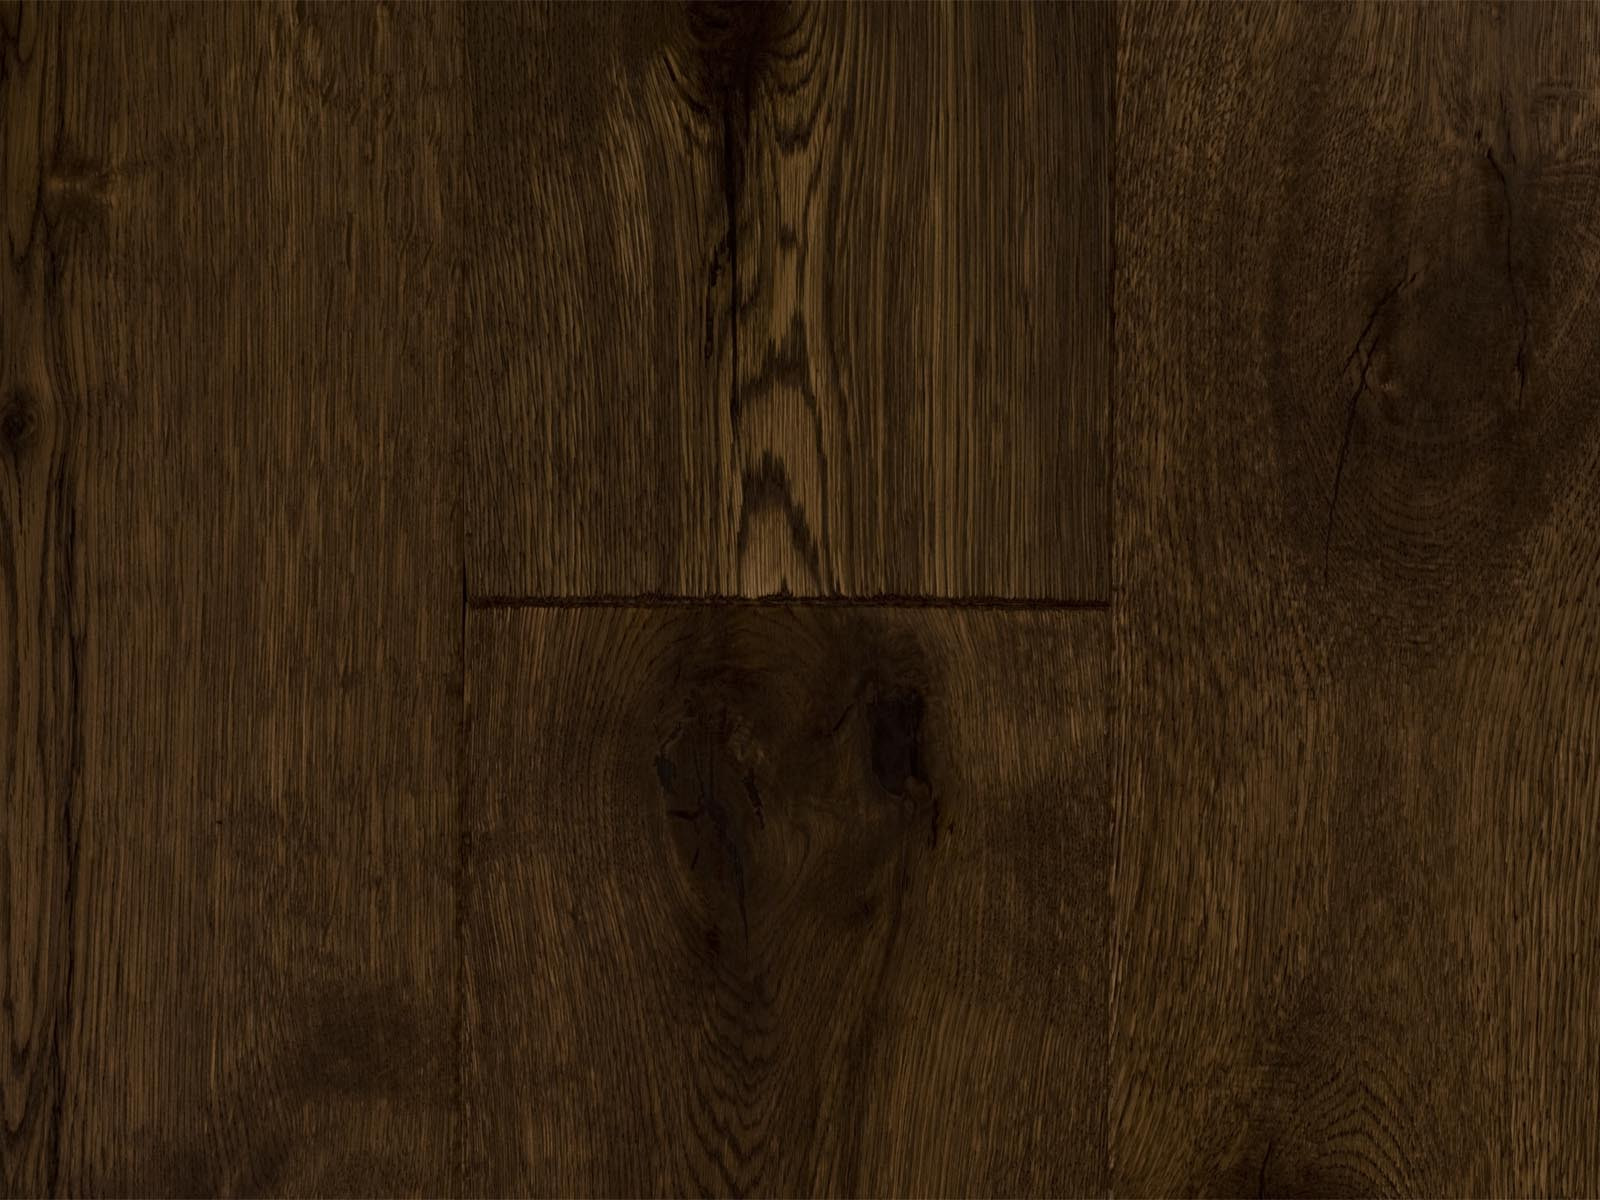 lauzon hardwood flooring reviews of american relics collection hfcentre inside windsor european oak